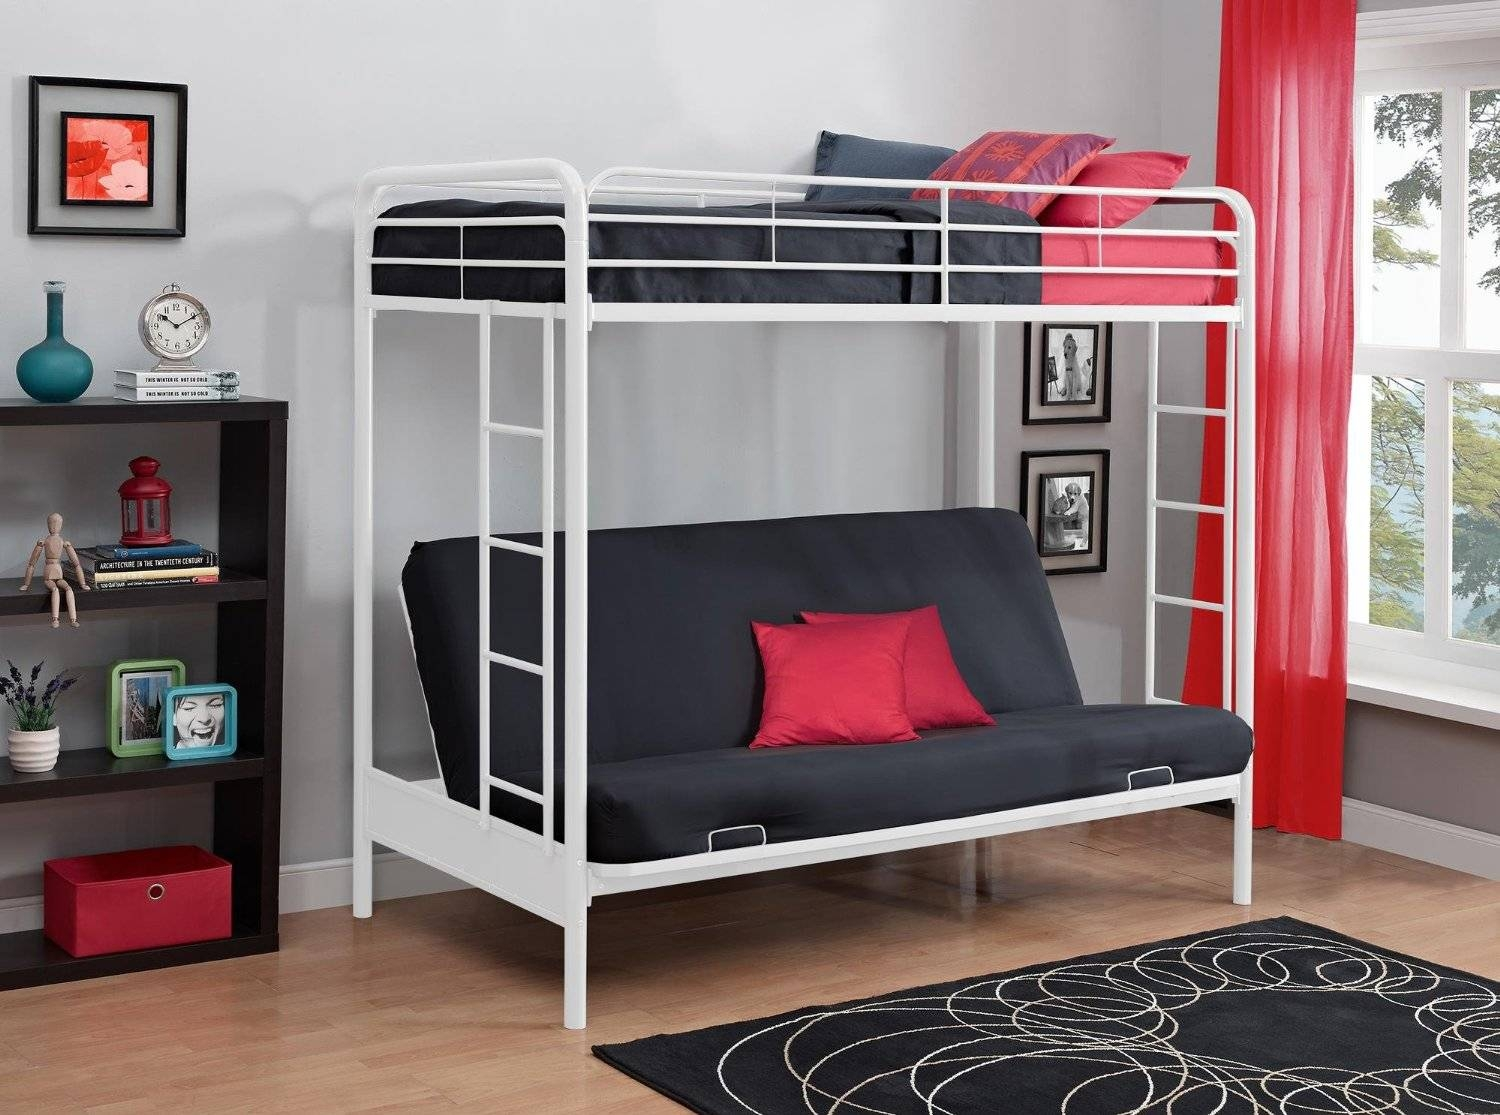 Total Fab: Metal & Wood Loft Beds With Sofa Underneath With Bunk Bed With Sofas Underneath (View 4 of 15)